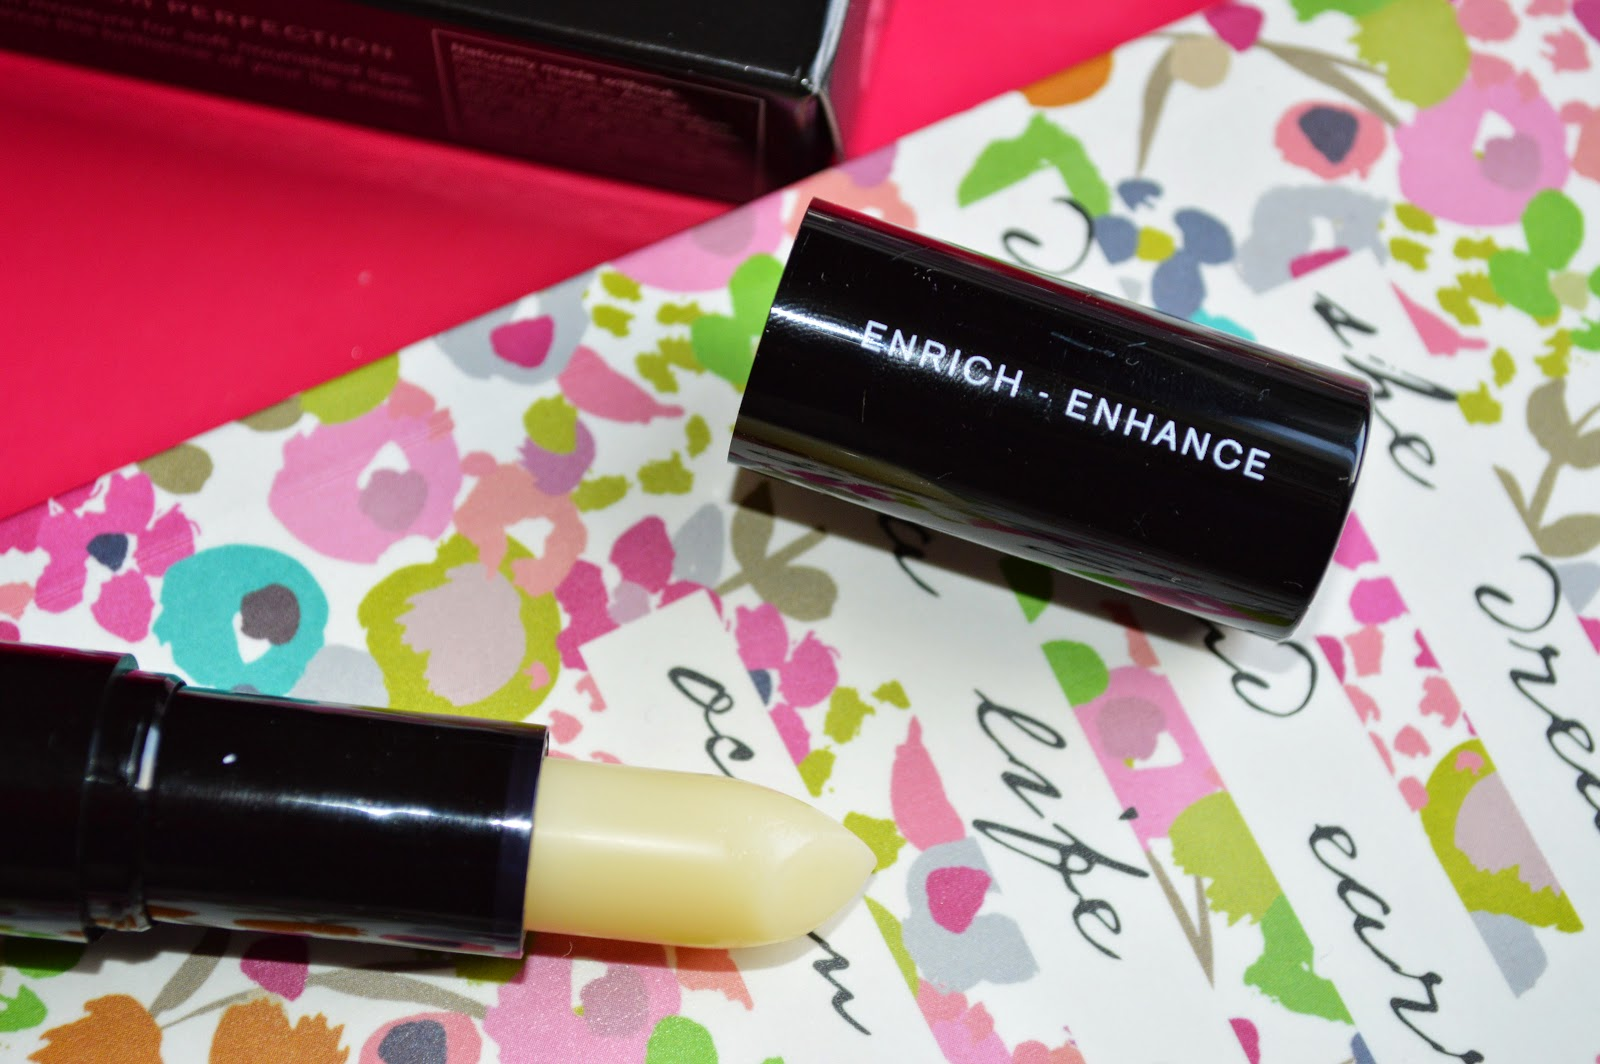 The Green People Enrich & Enhance Lip Primer